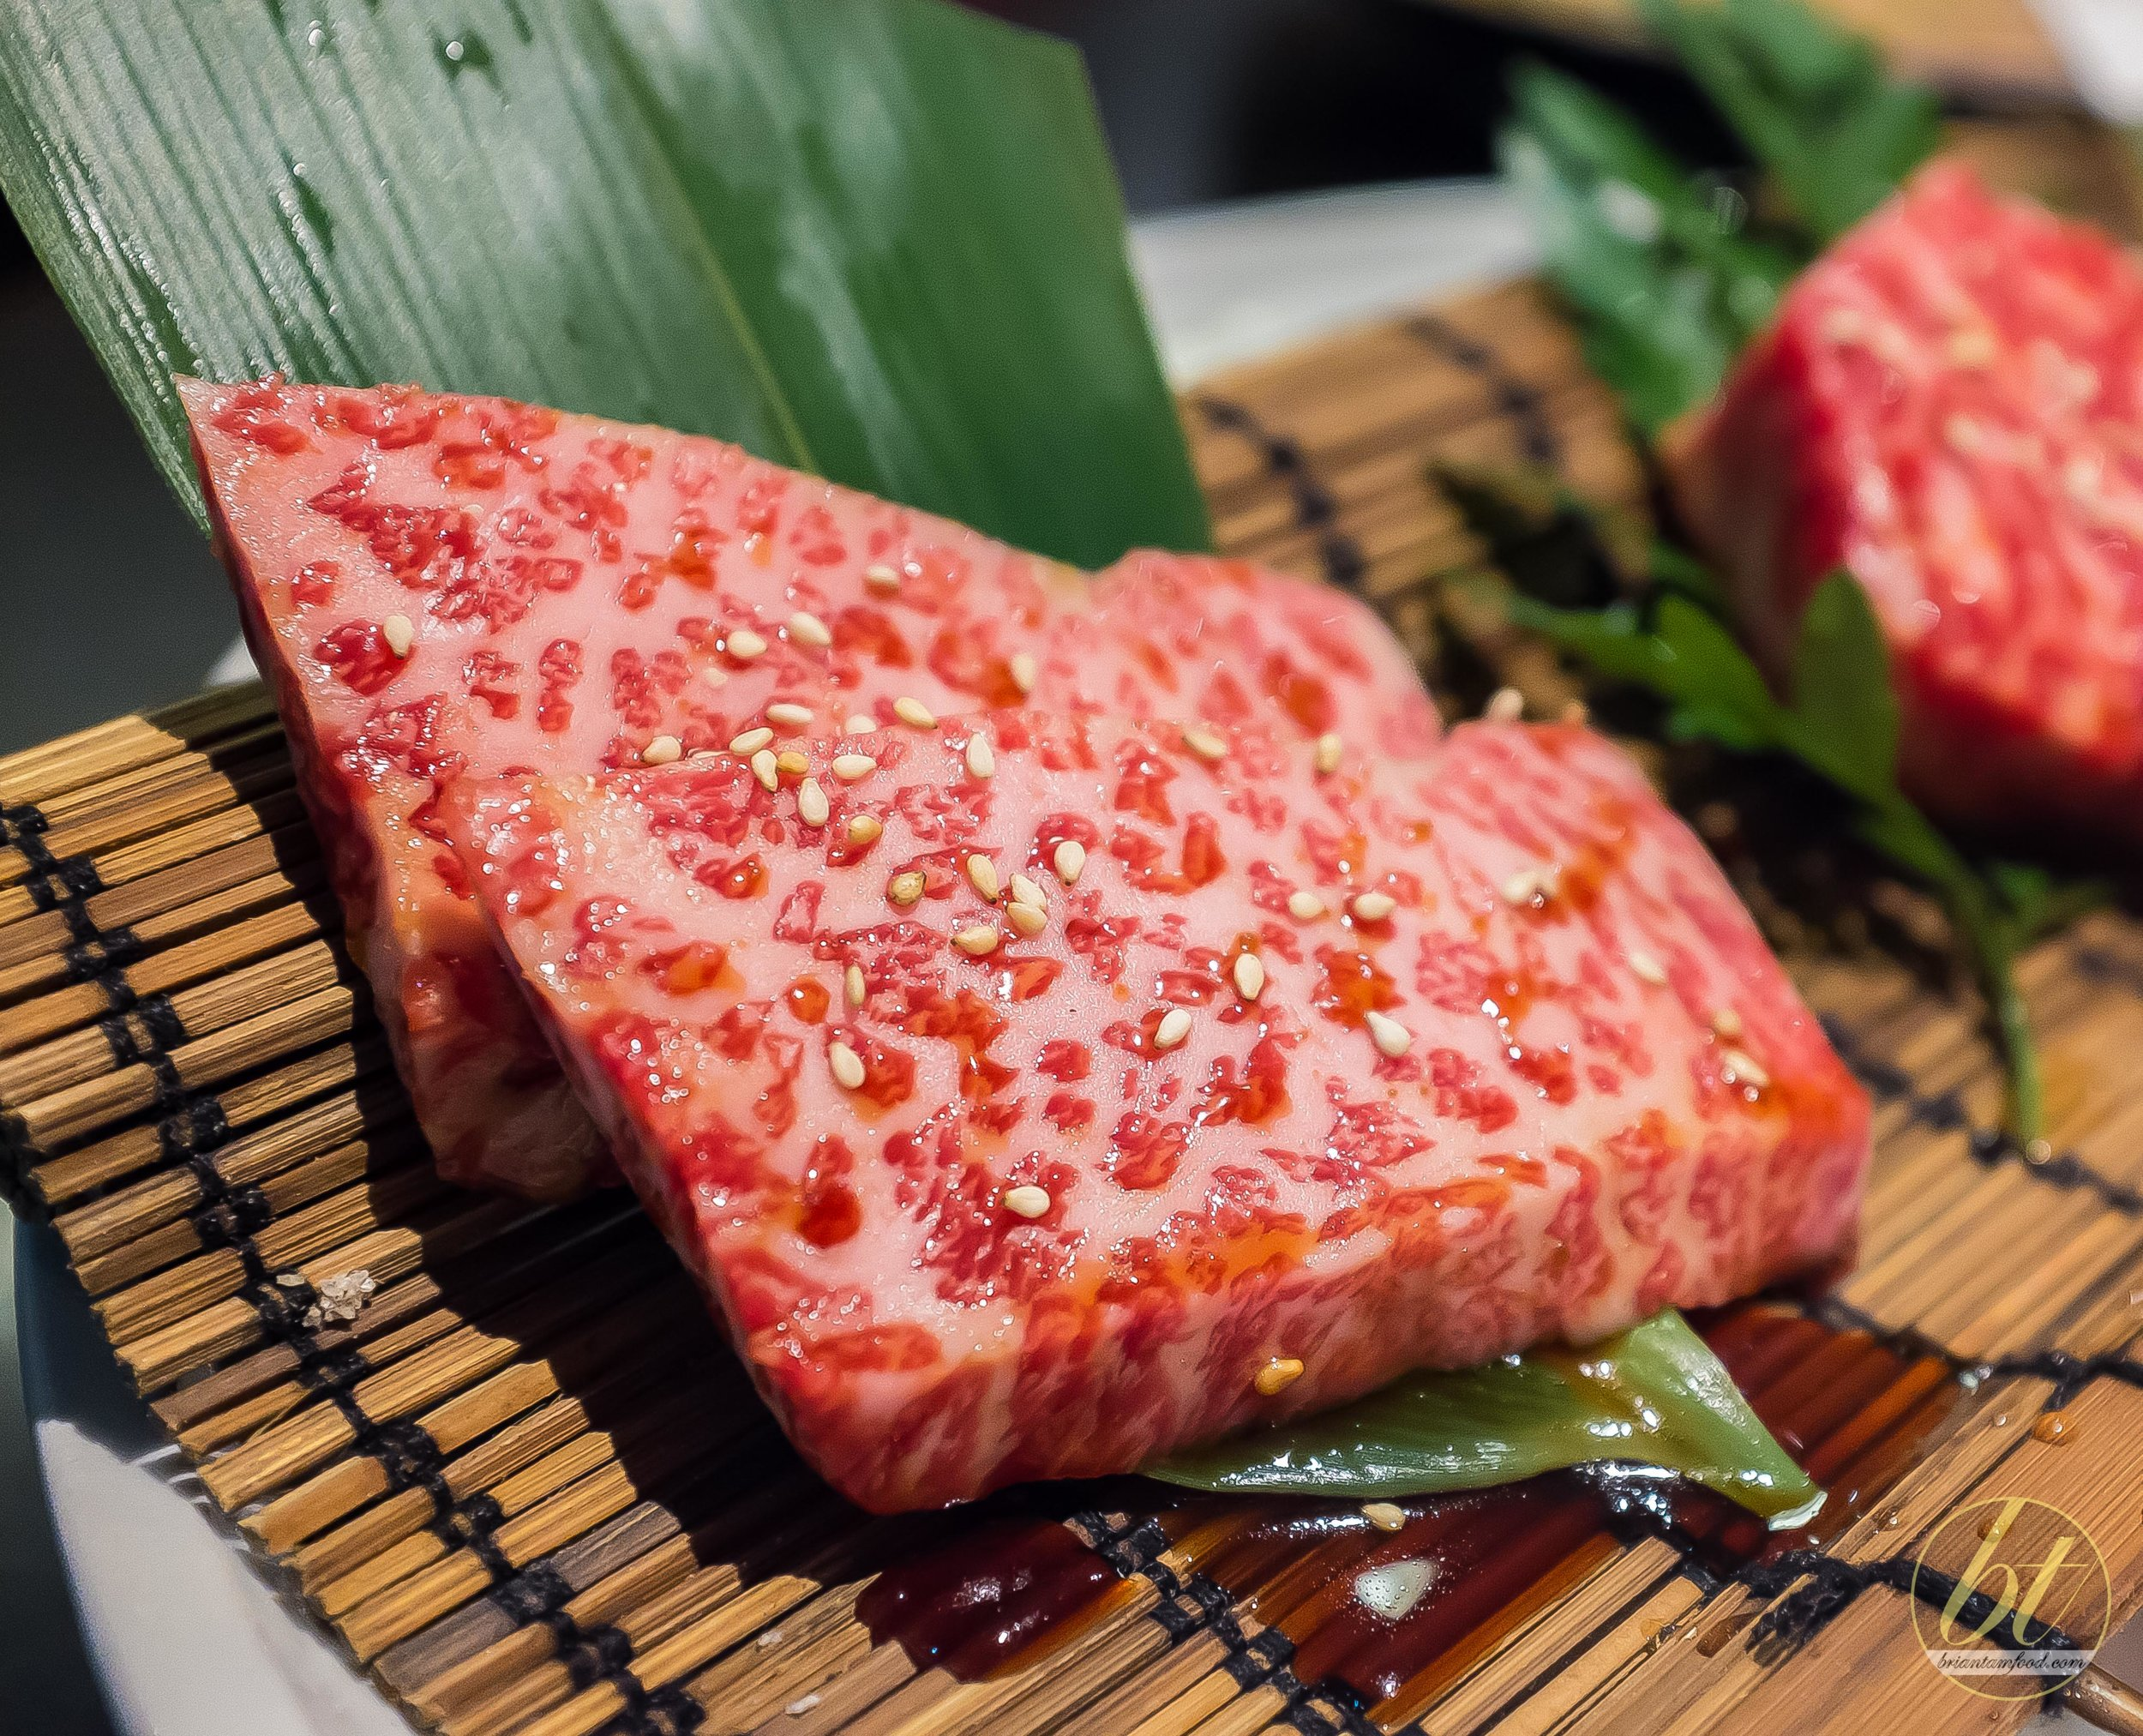 I almost lost my marbles when I saw the marbling on this wagyu rib... :)